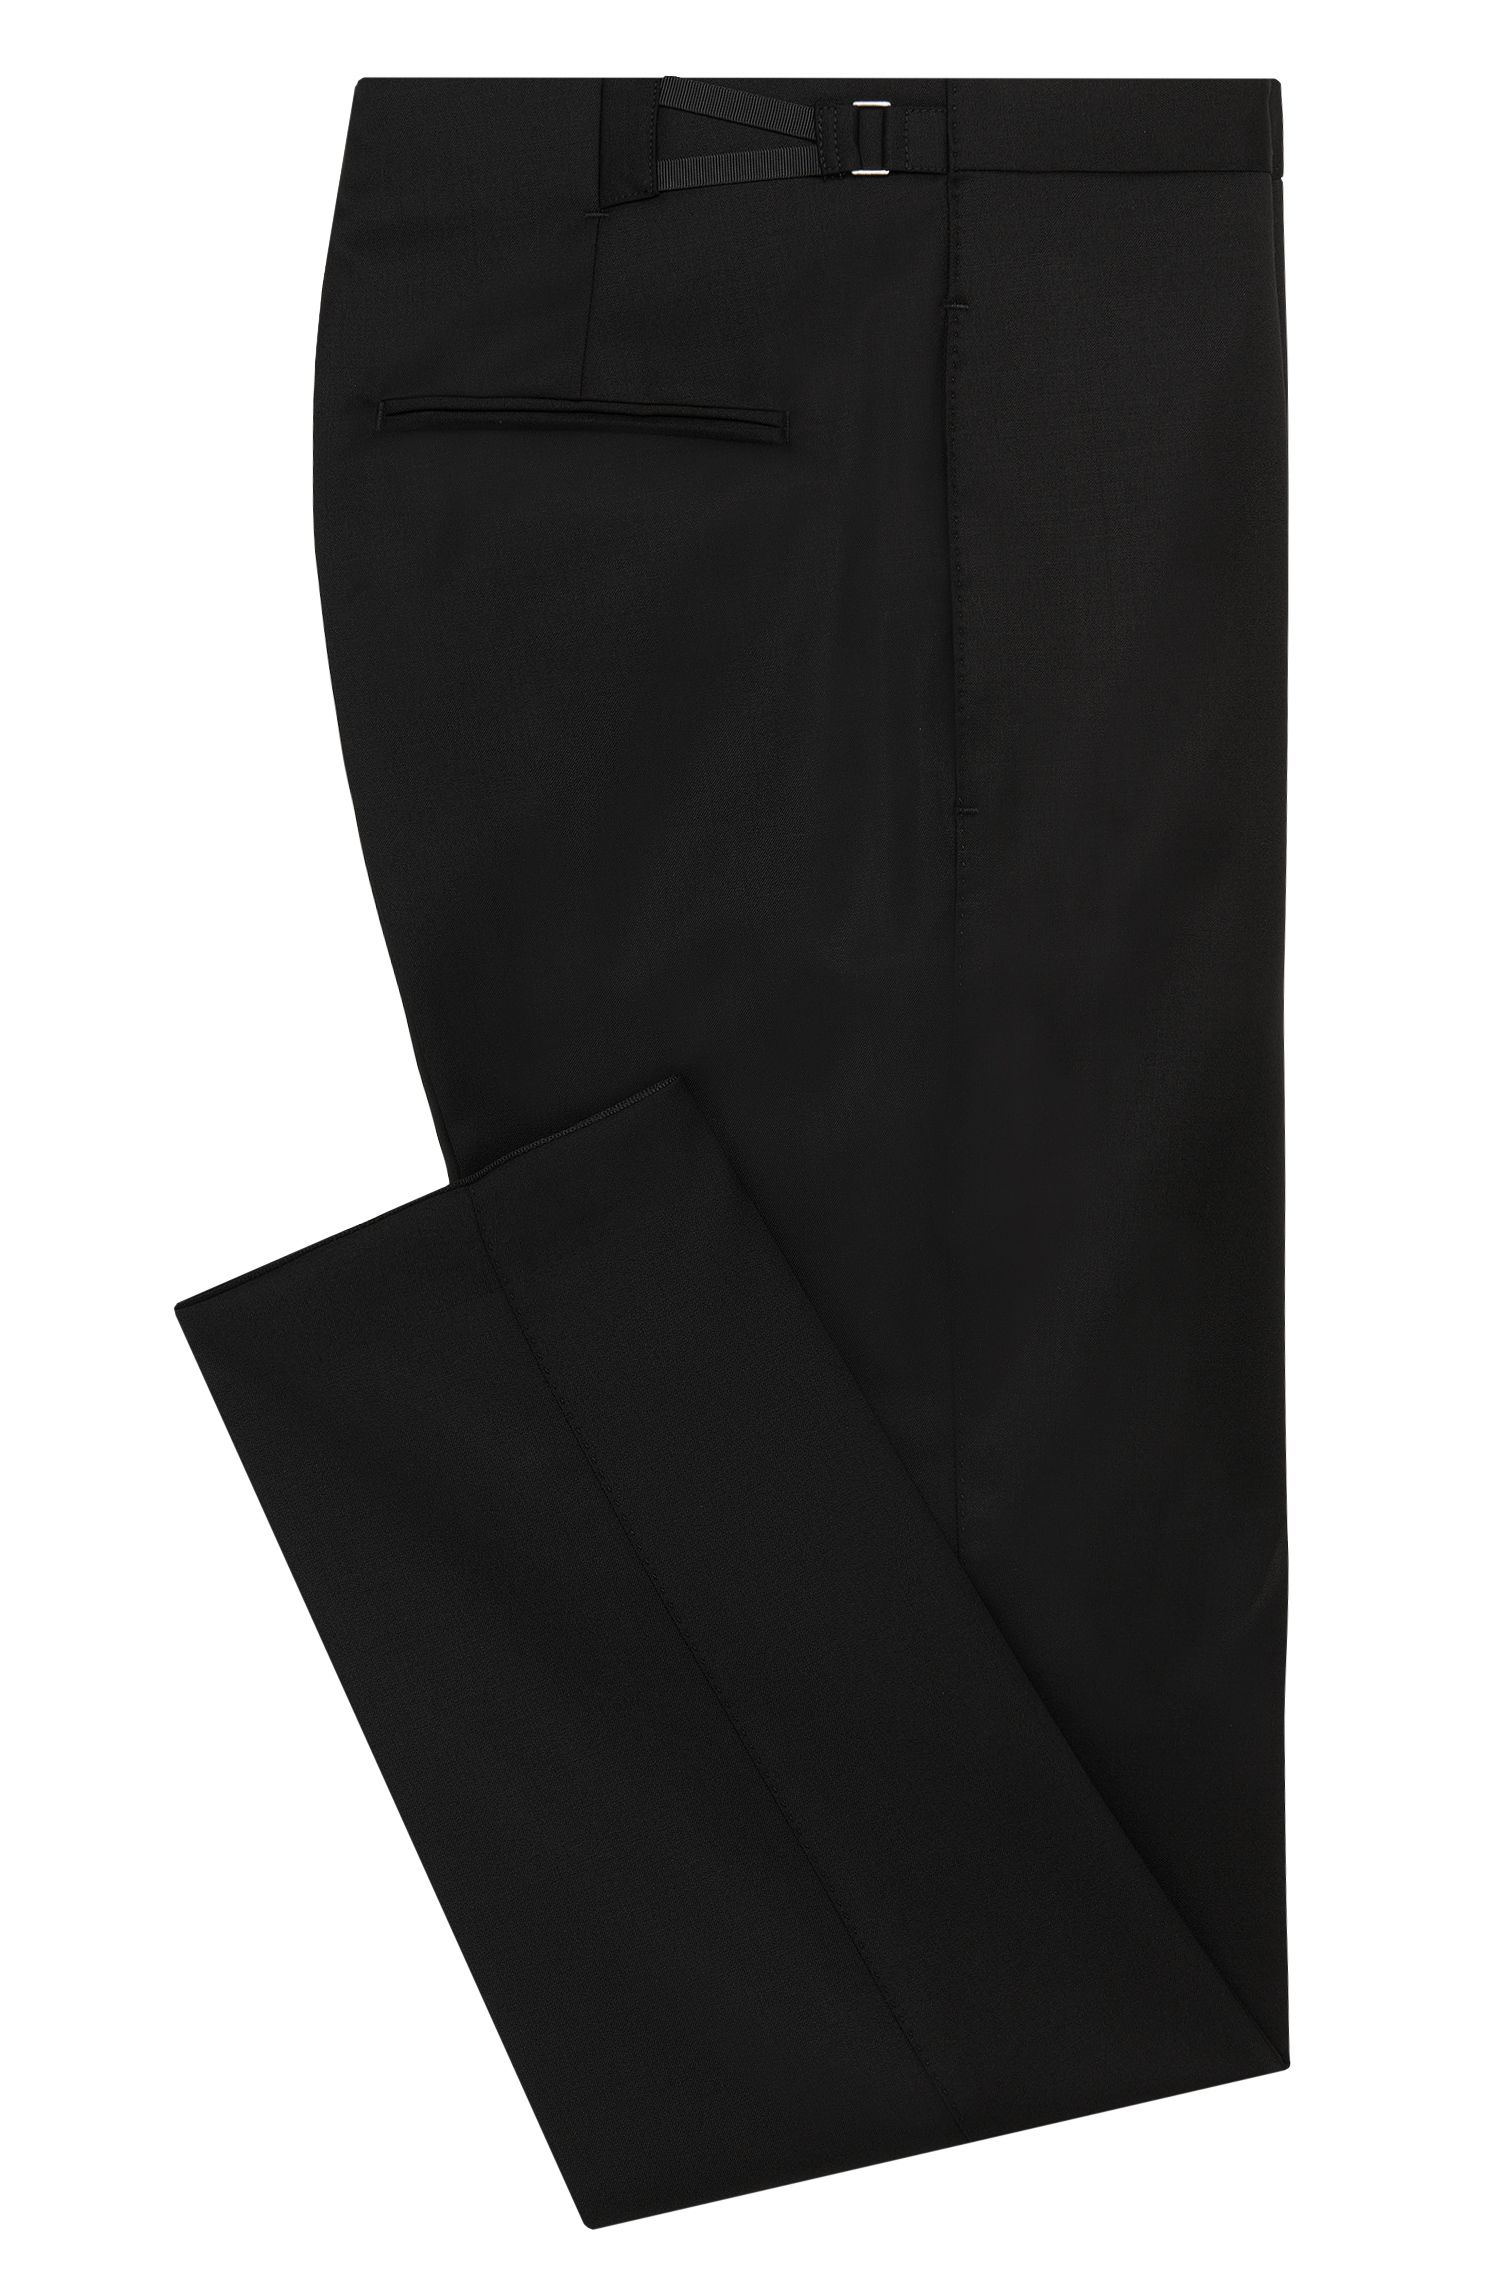 Pantalon Slim Fit en laine vierge pourvu de bandes décoratives : « Godwin »